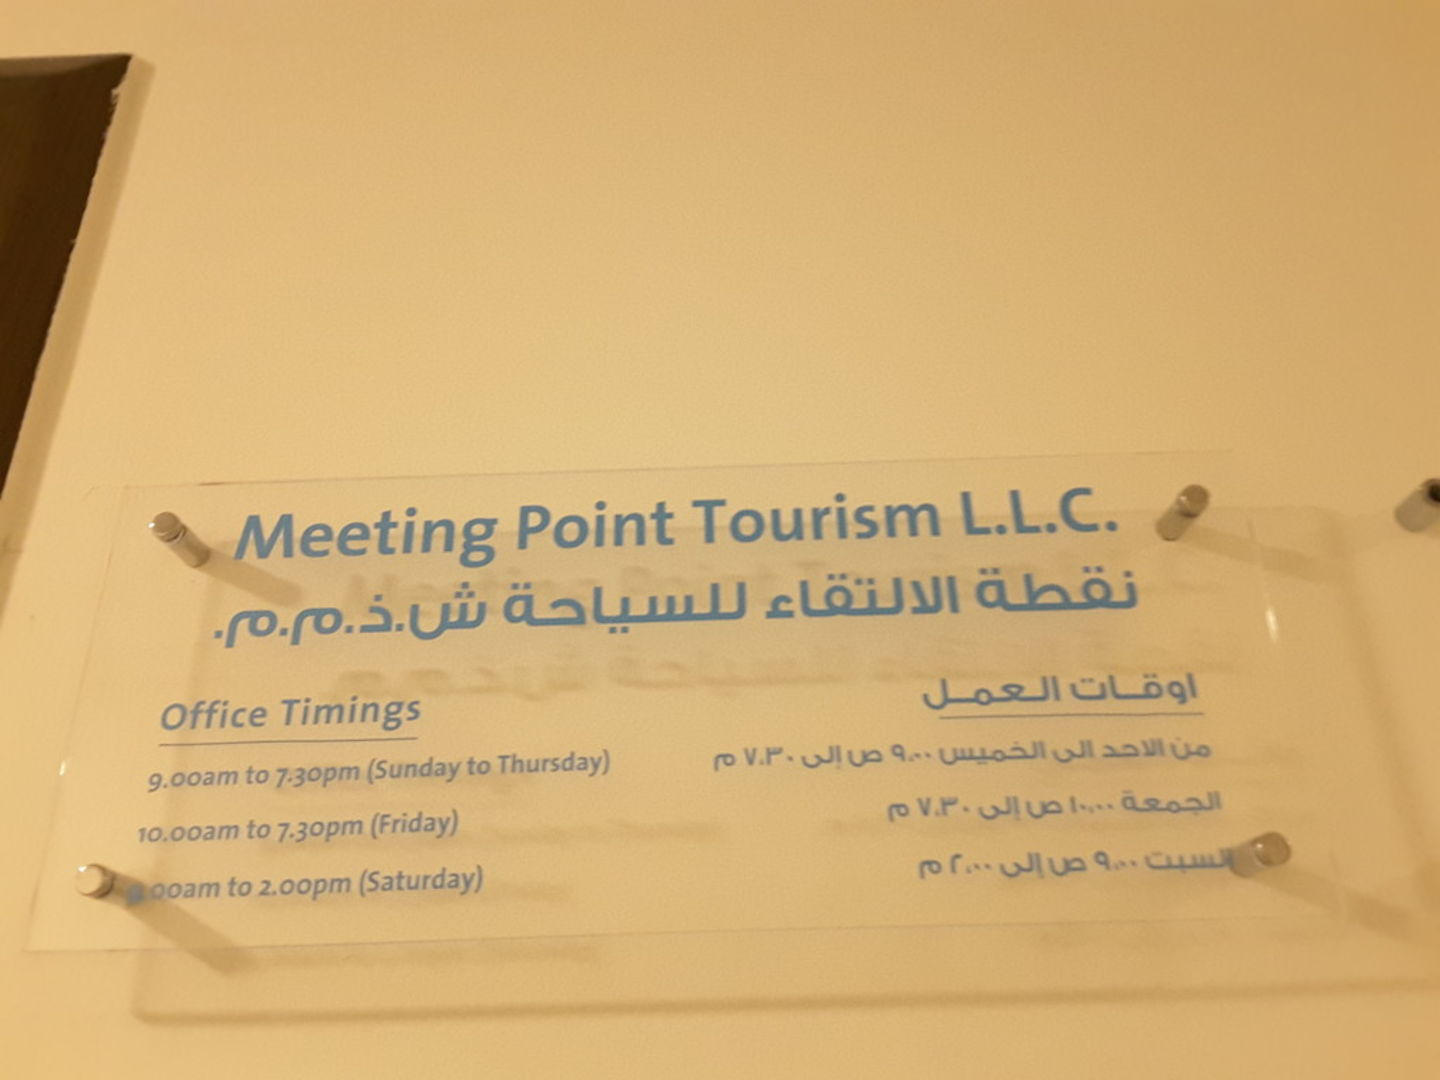 HiDubai-business-meeting-point-tourism-b2b-services-business-consultation-services-ibn-batuta-jebel-ali-1-dubai-2